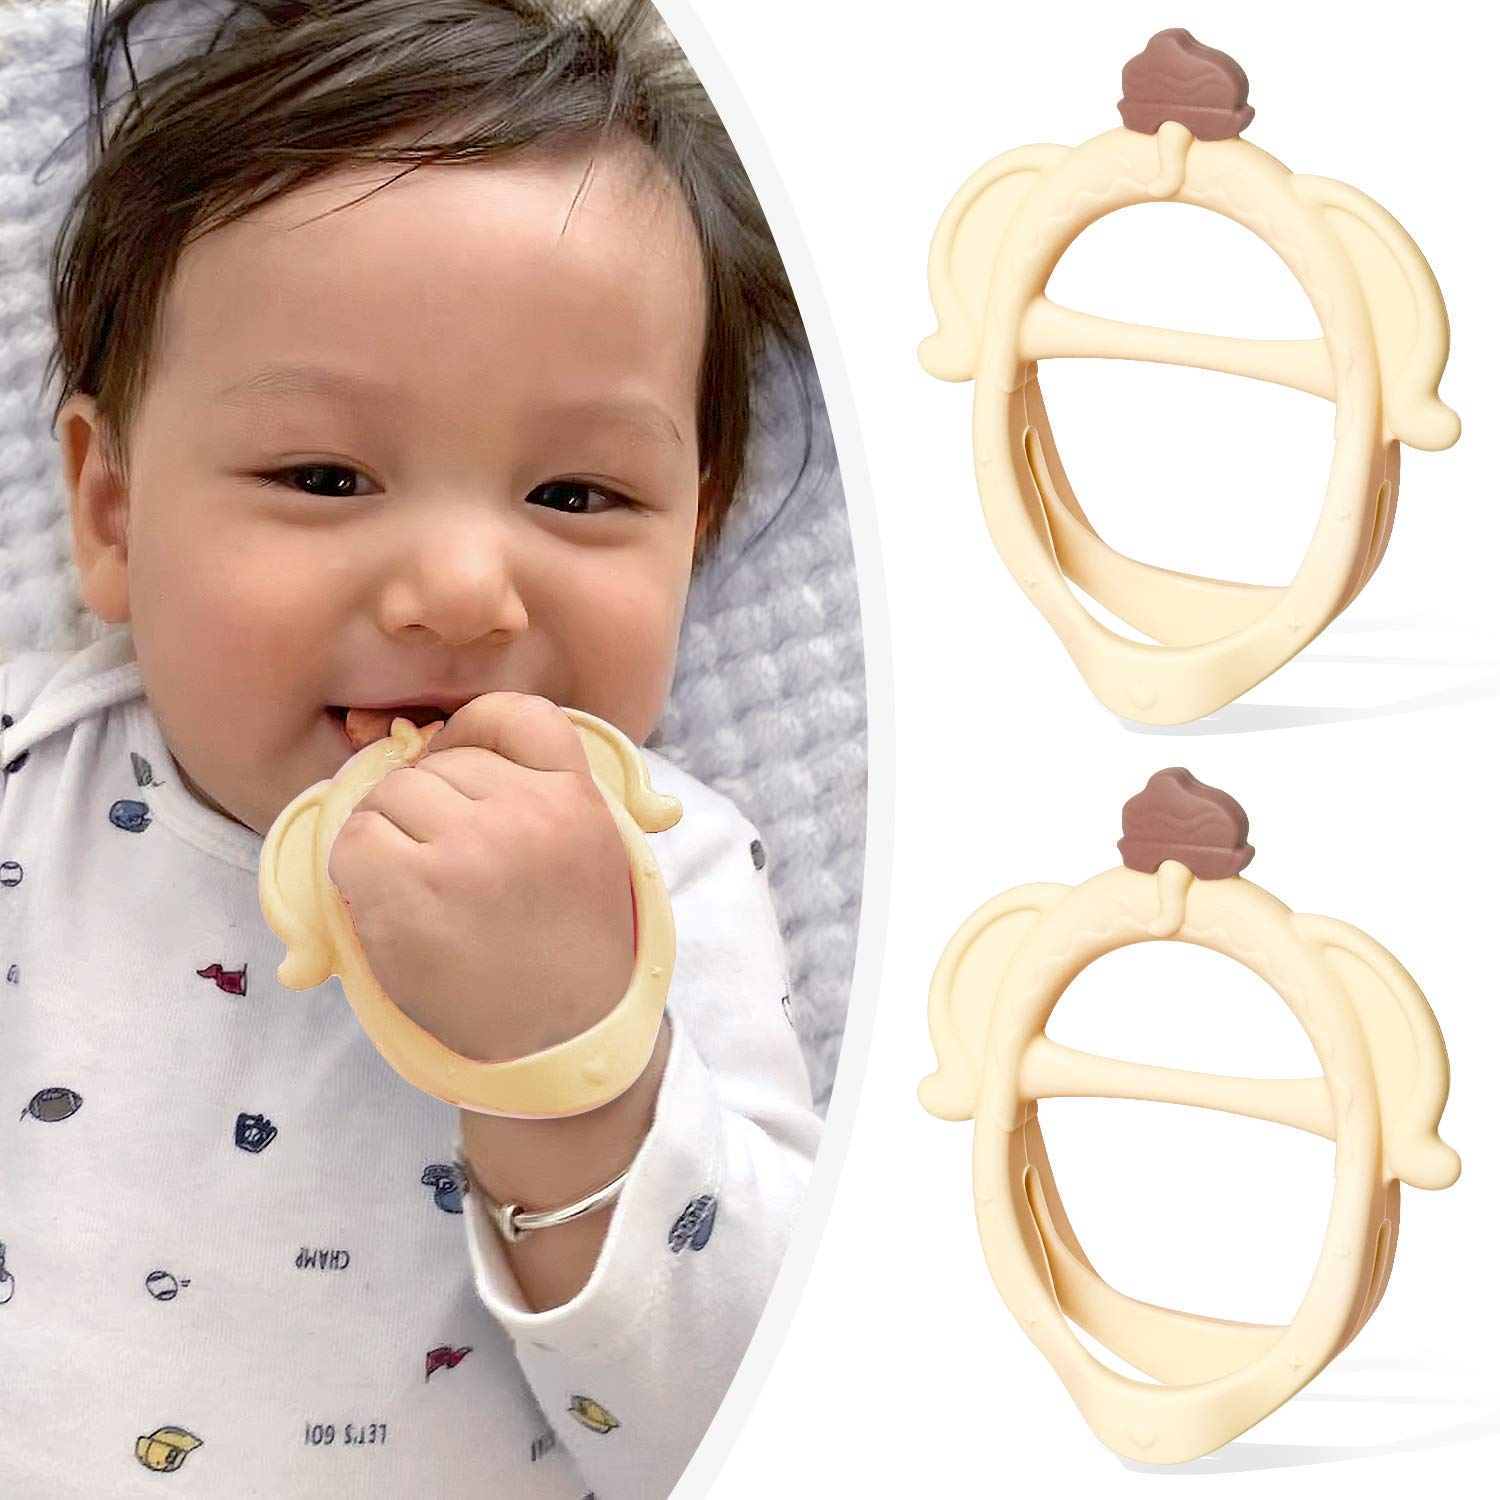 Termichy Baby Teething Toys-2 Pack BPA Free-Silicone Elephant Teether for 0-6 Months Baby Silicone Teethers for Baby Soothe Gums